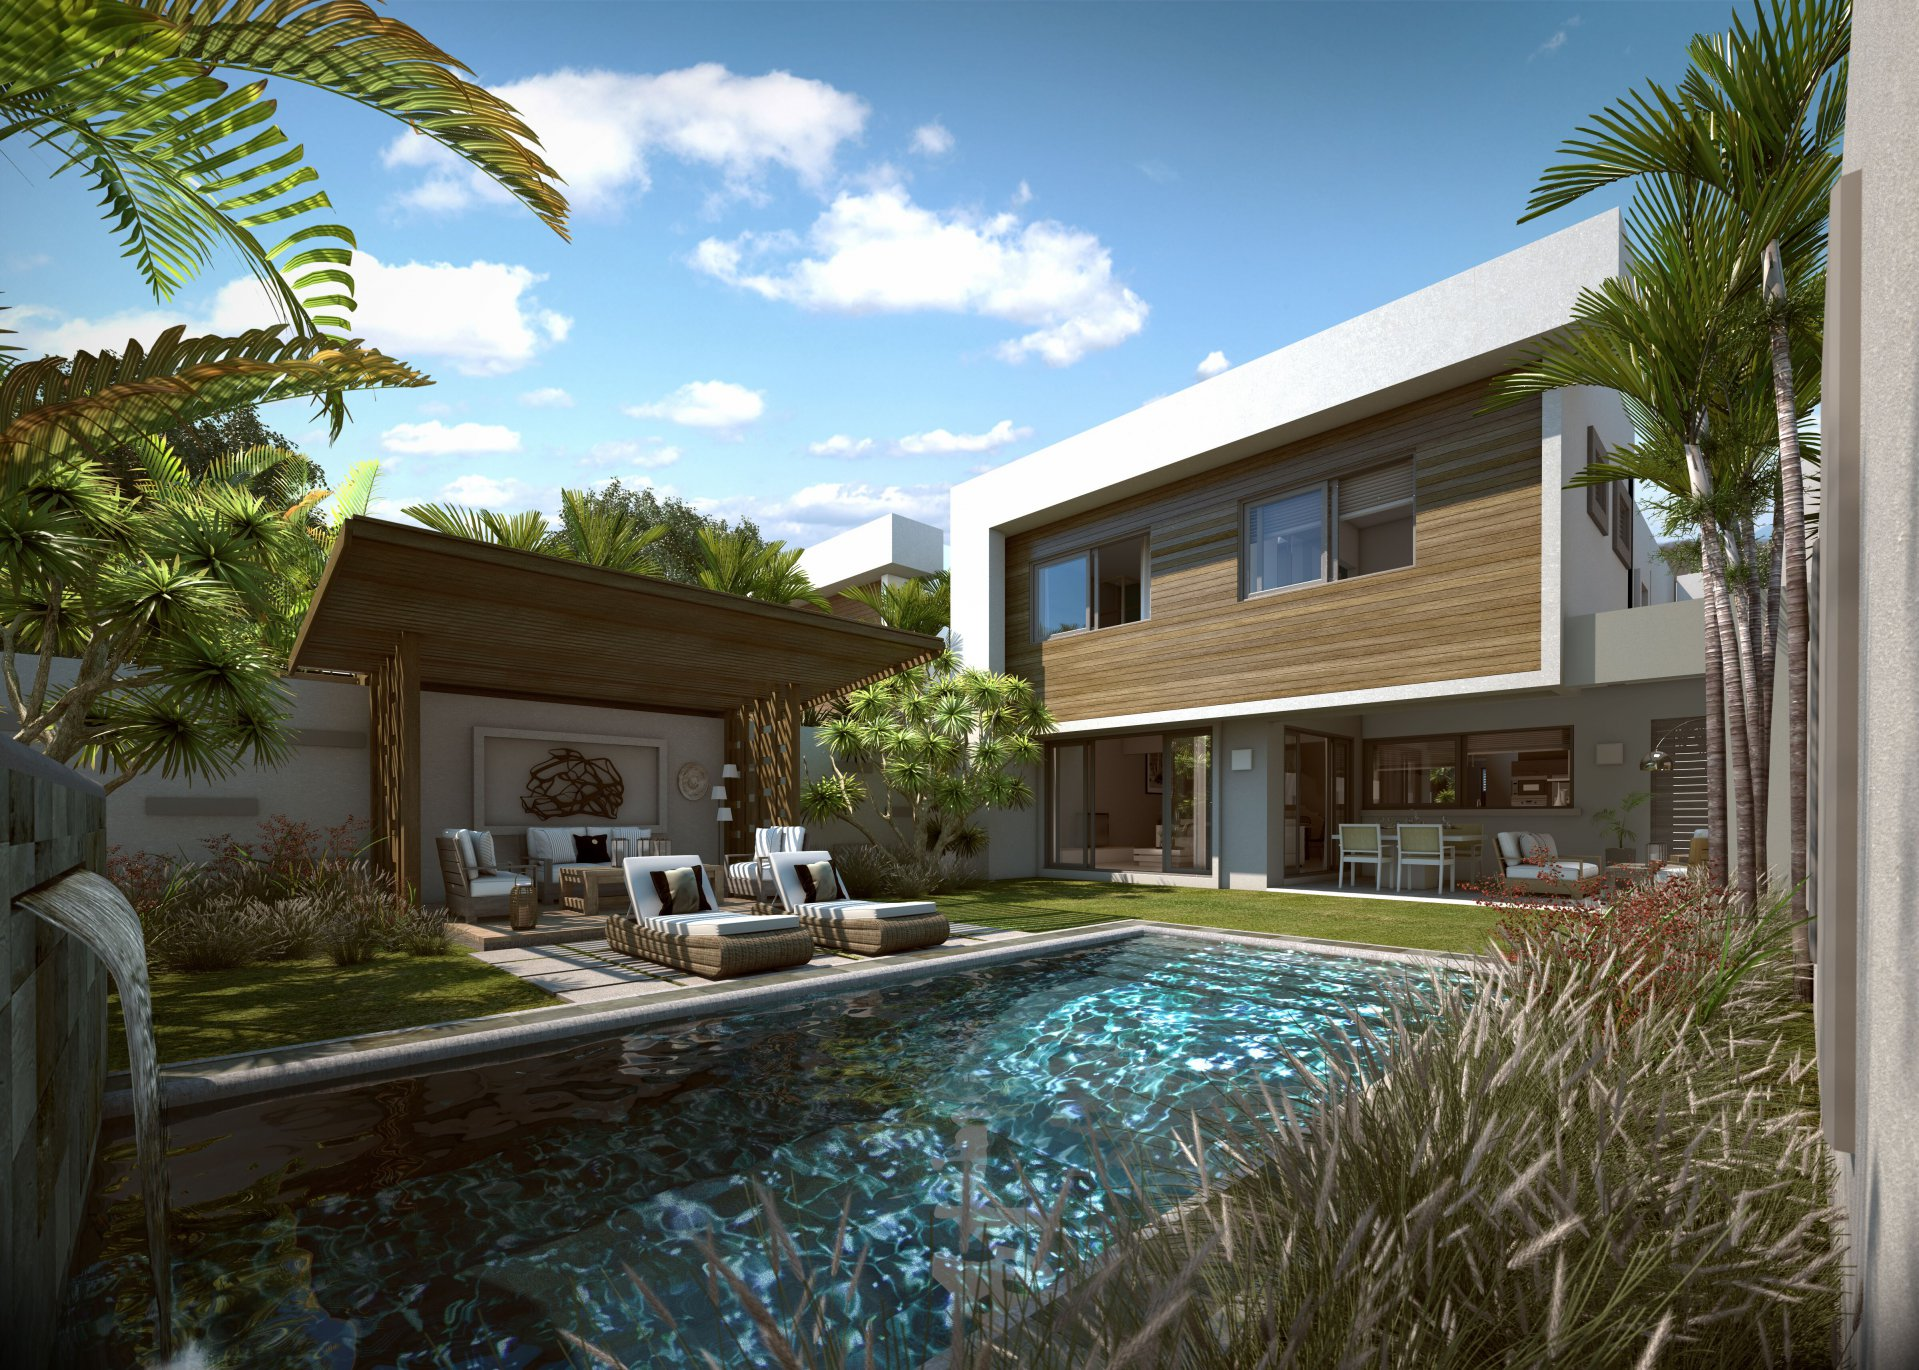 Residences surrounding 90 hectares of parkland with access to beach